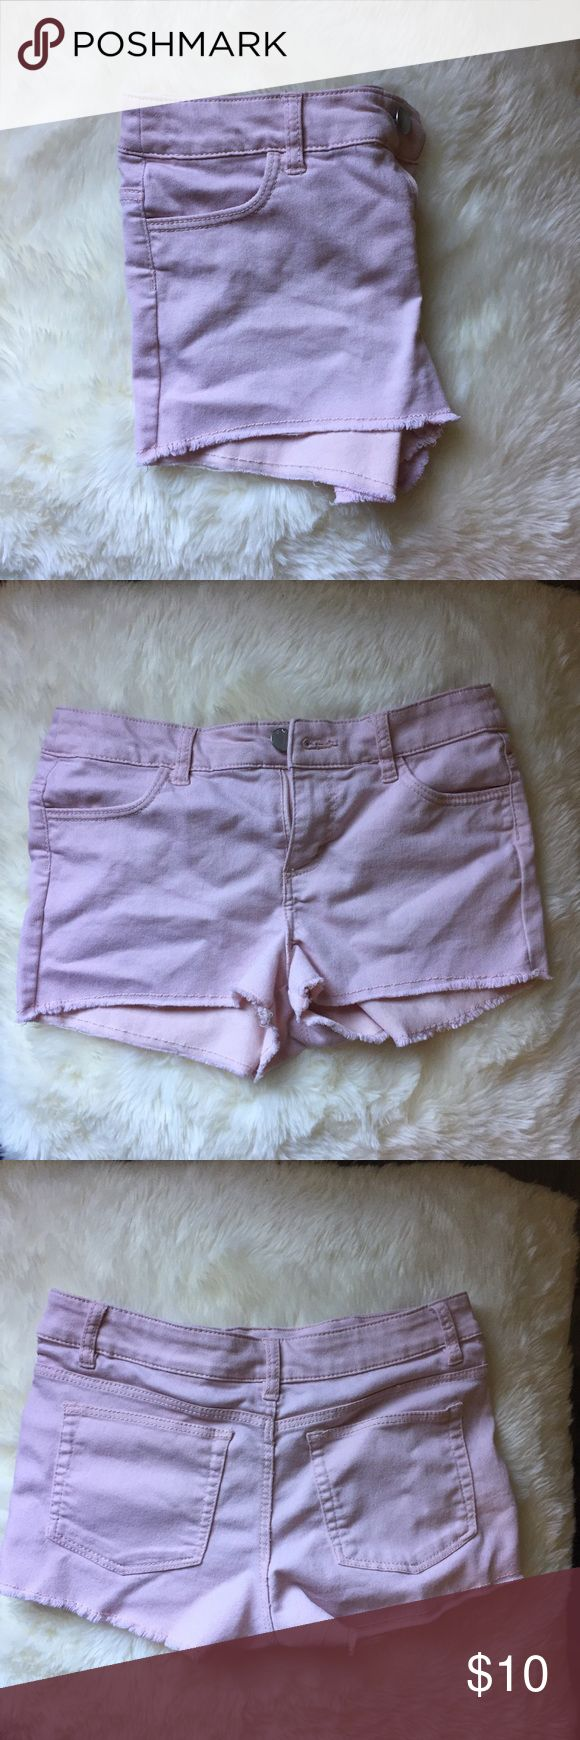 H&M - Pink Shorts - SIZE 4/6 - Summer Shorts H&M - Summer Pink Shorts, Light fabric, super comfortable, I'm a size 6 but there tight on me (I have a butt), I would say there more of a size 4. Super cute and love the color, just wish they fit. Blush Pink, peach shorts, spring styles, short shorts H&M Shorts